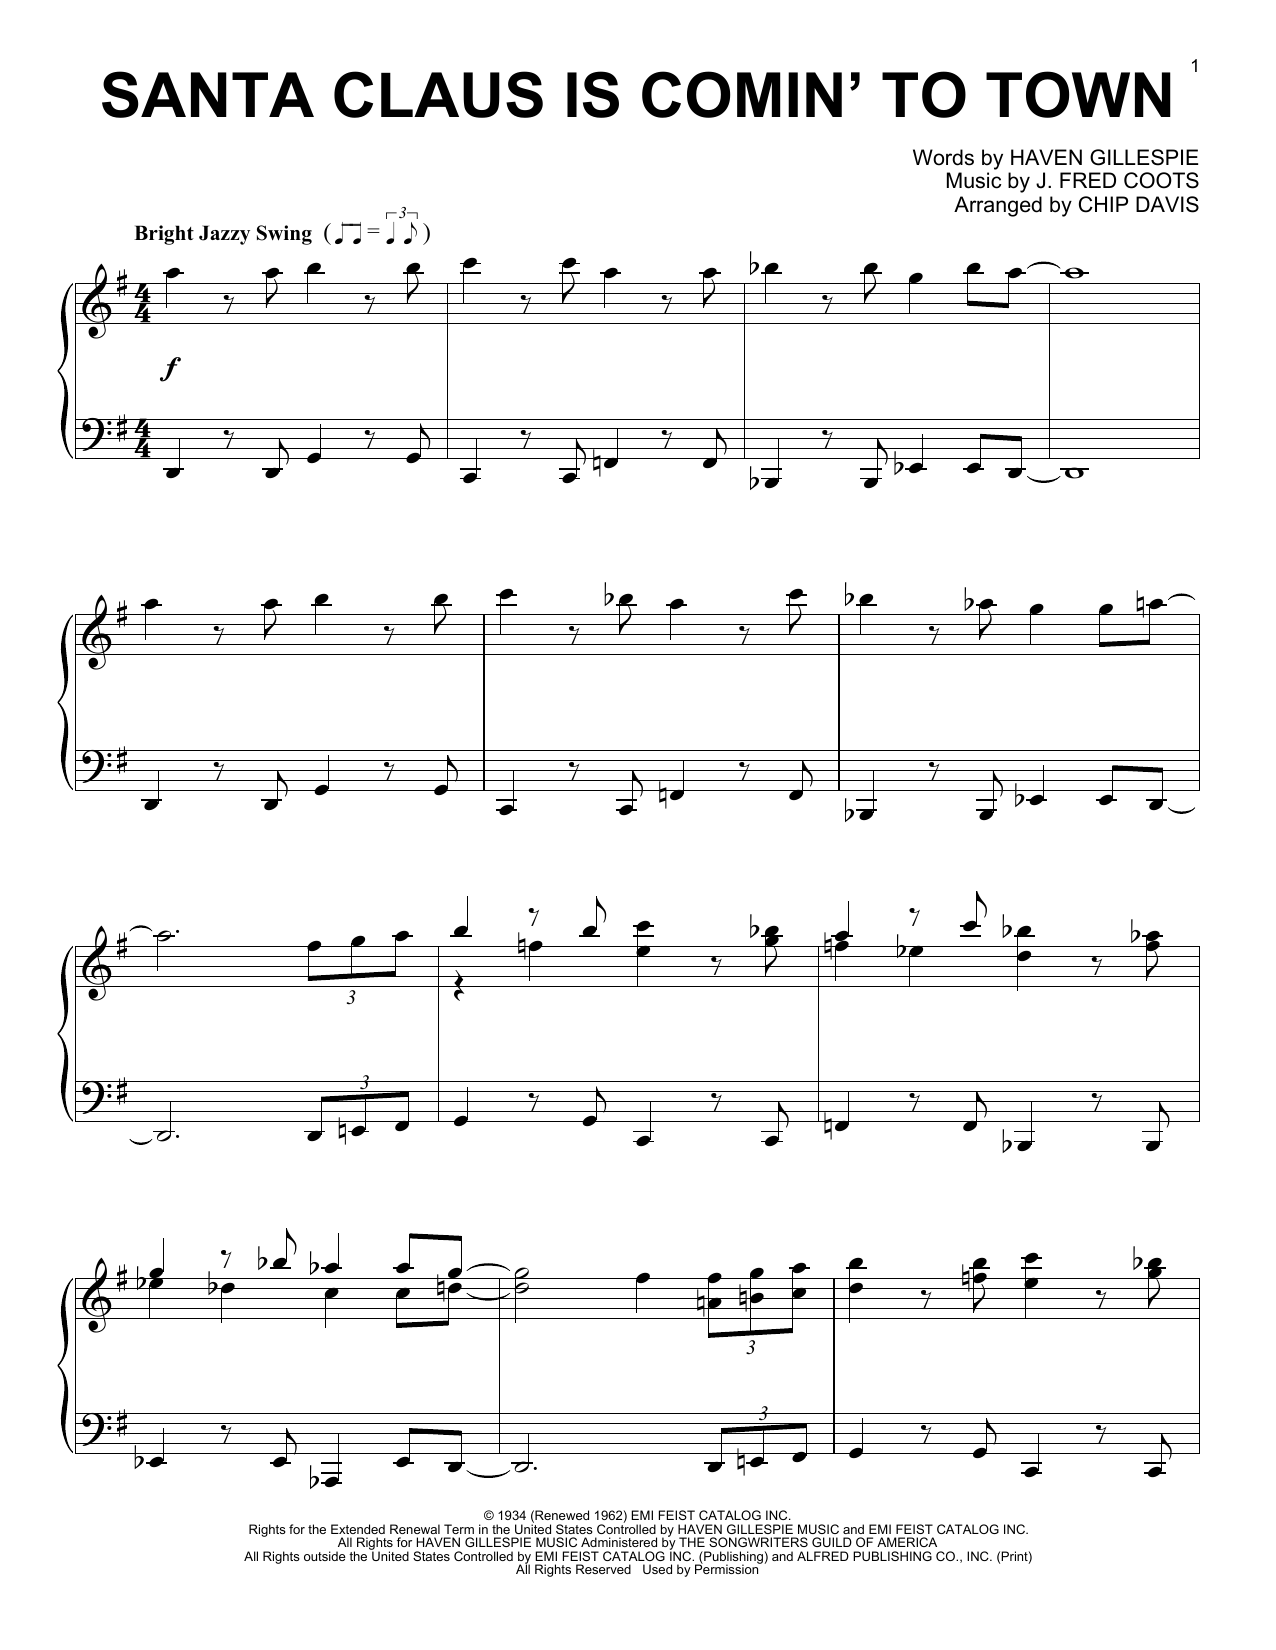 Mannheim Steamroller Santa Claus Is Comin' To Town sheet music notes and chords. Download Printable PDF.